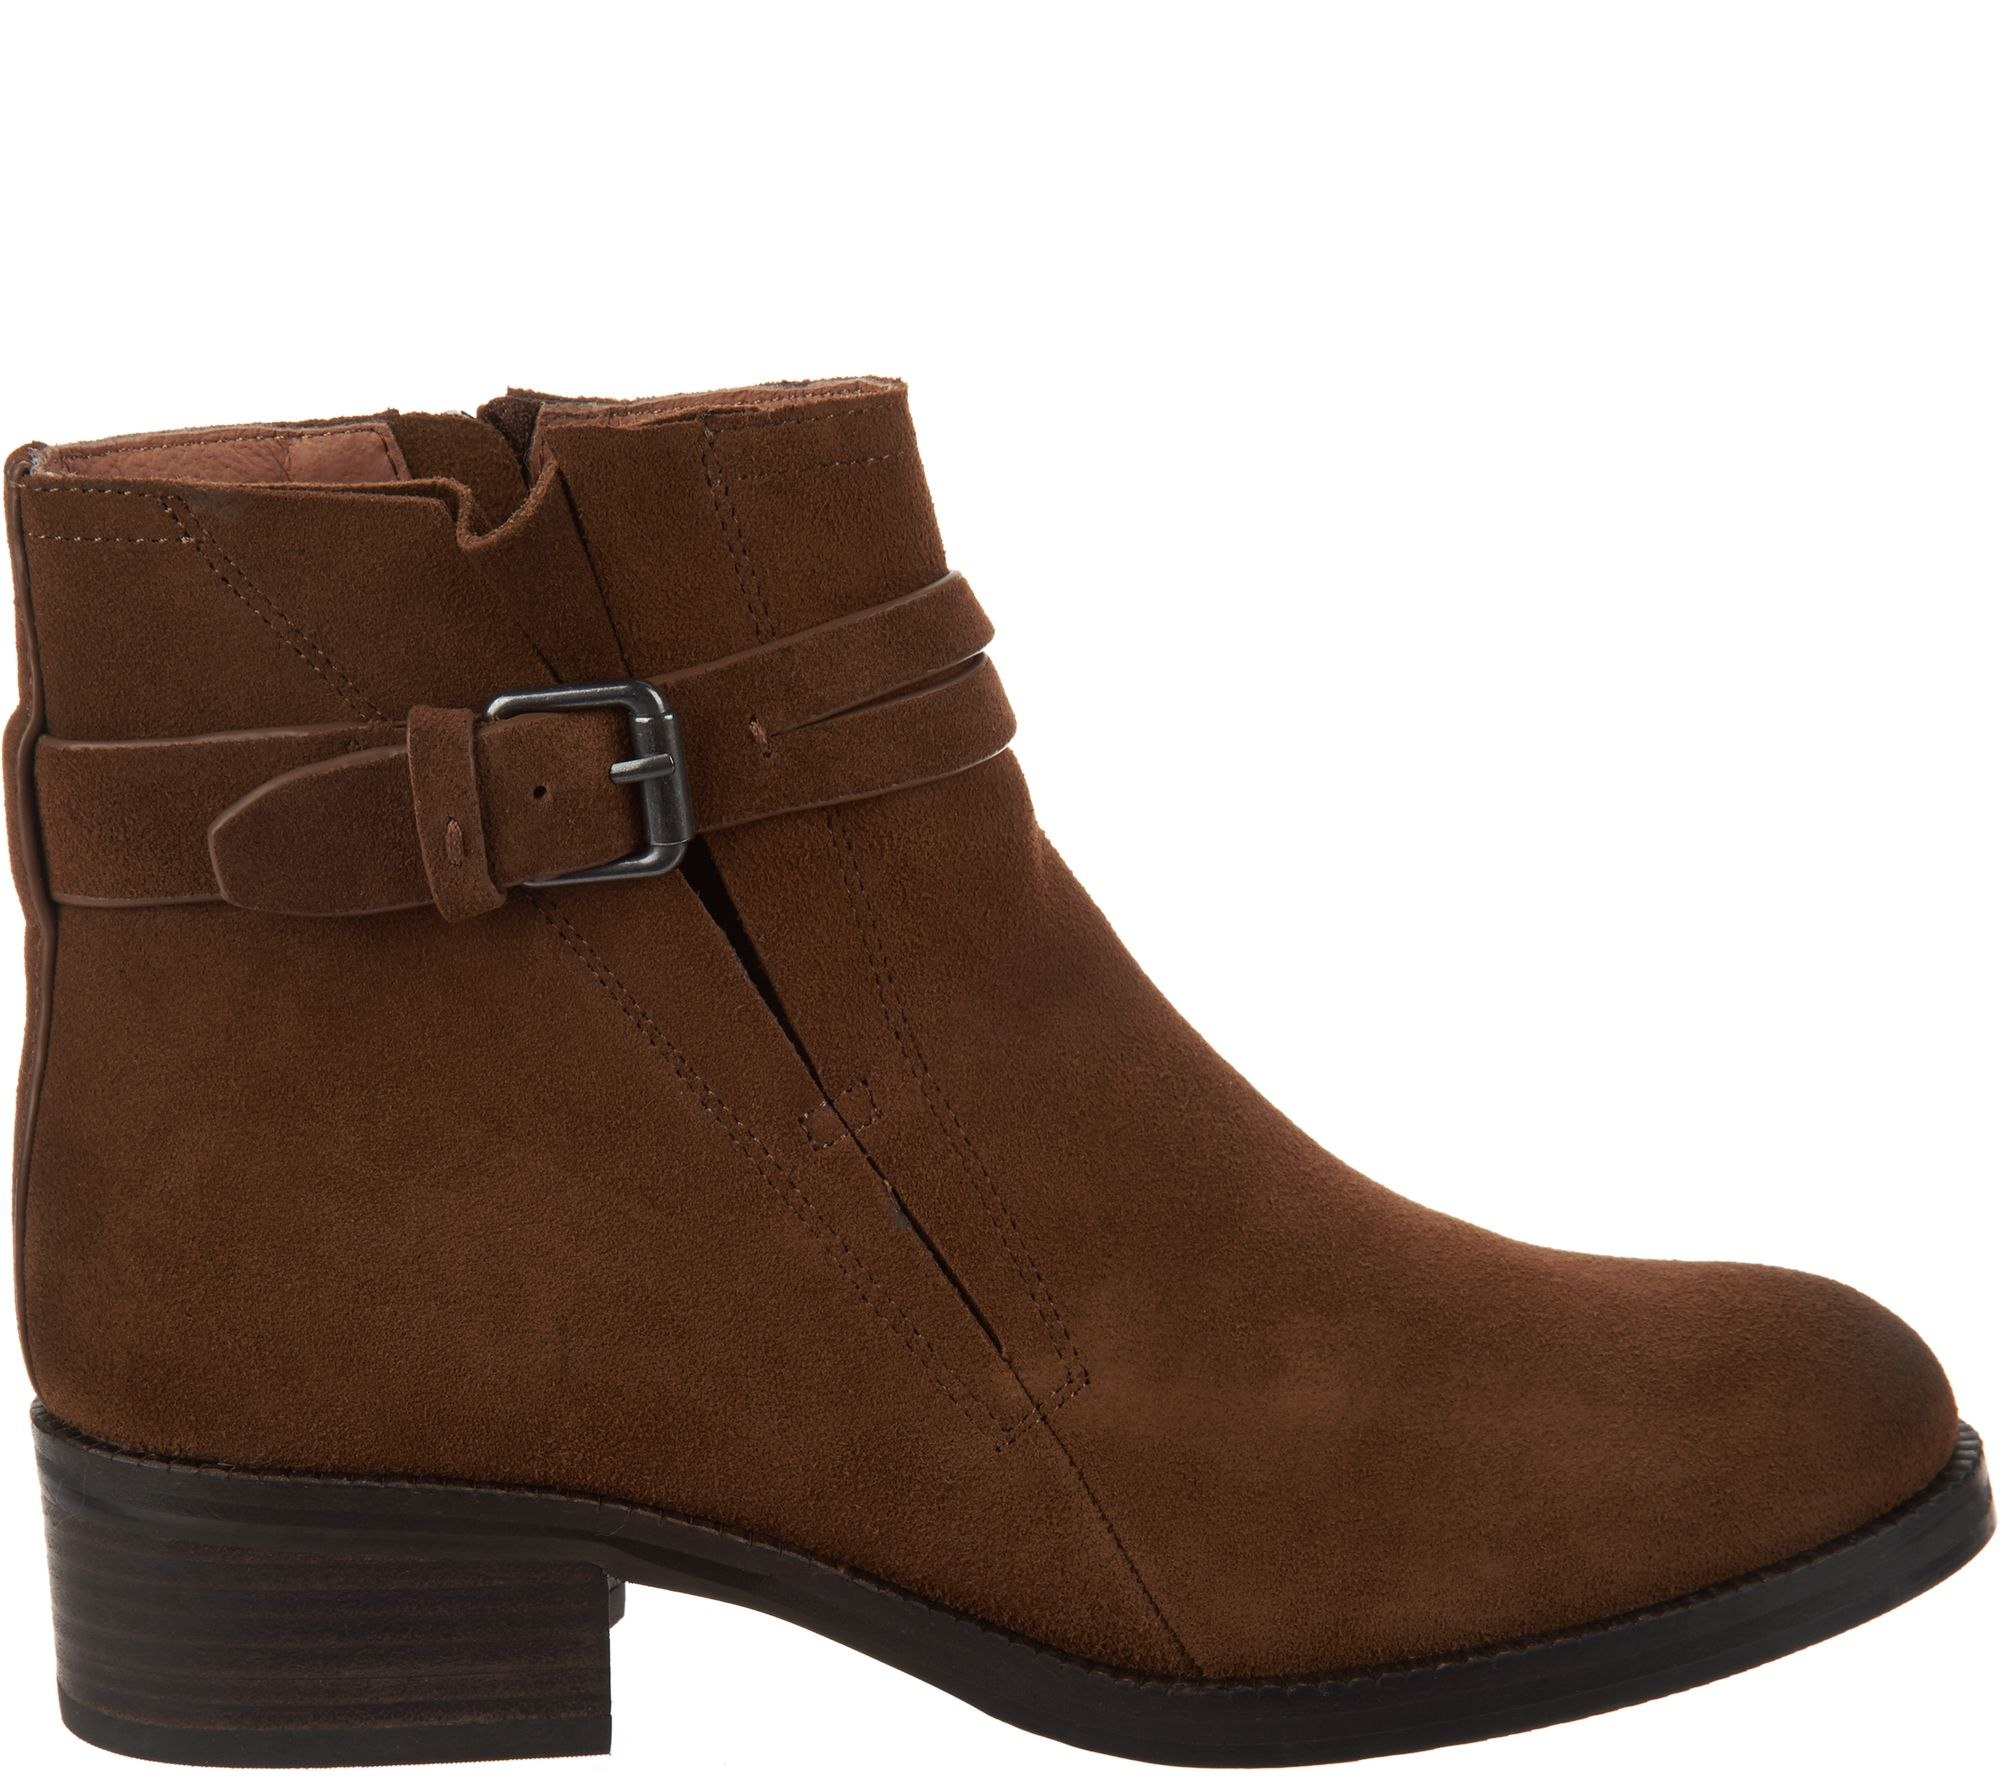 9a2abf1734b Gentle Souls Leather or Suede Ankle Boots - Percy — QVC.com